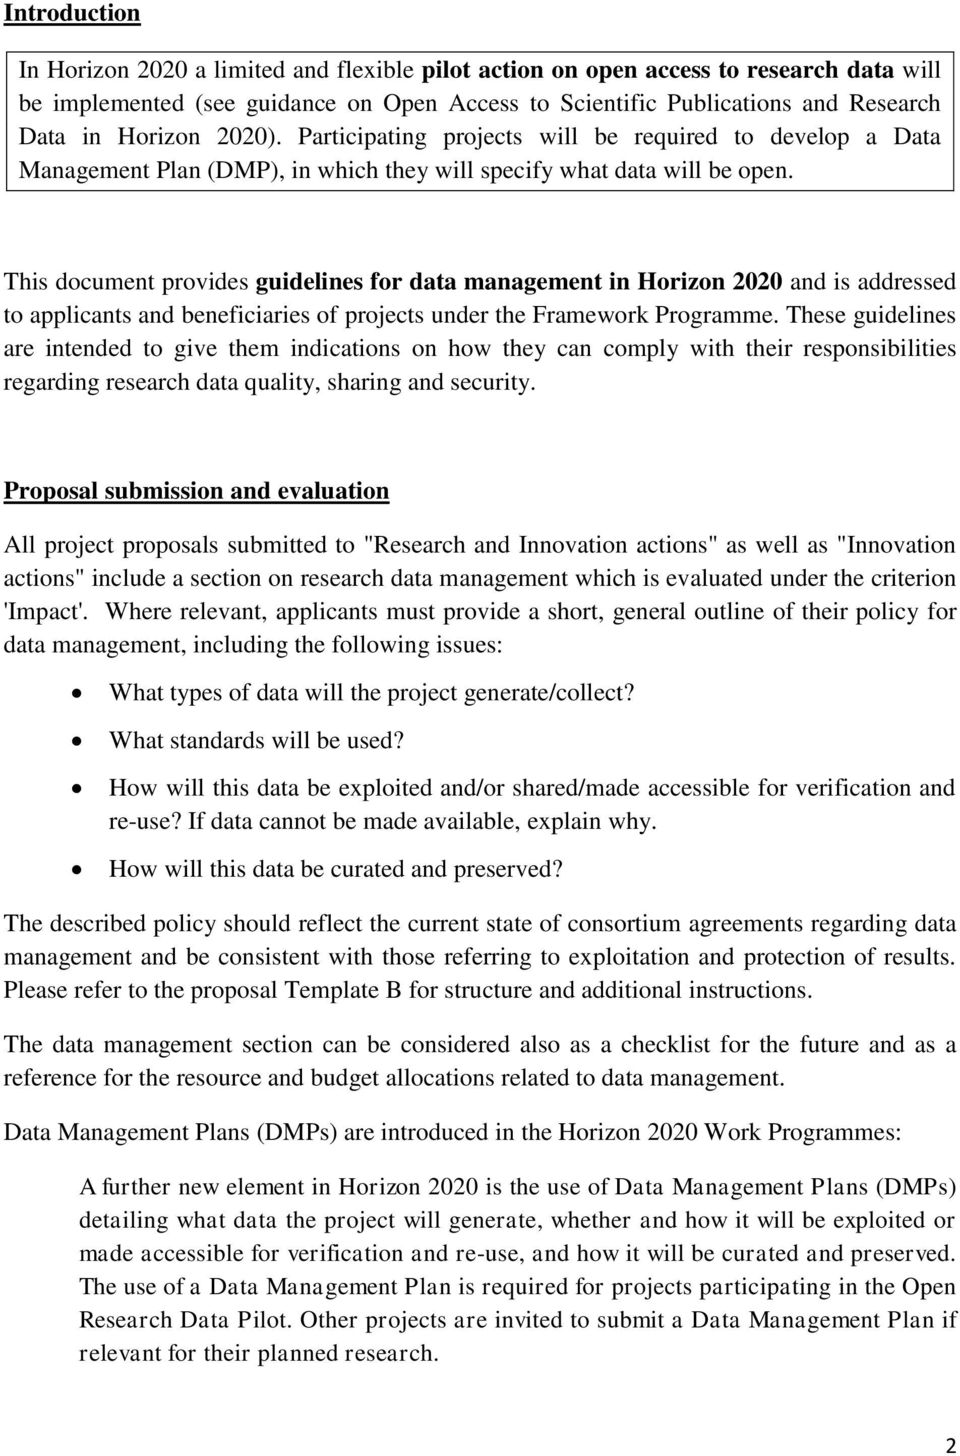 This document provides guidelines for data management in Horizon 2020 and is addressed to applicants and beneficiaries of projects under the Framework Programme.